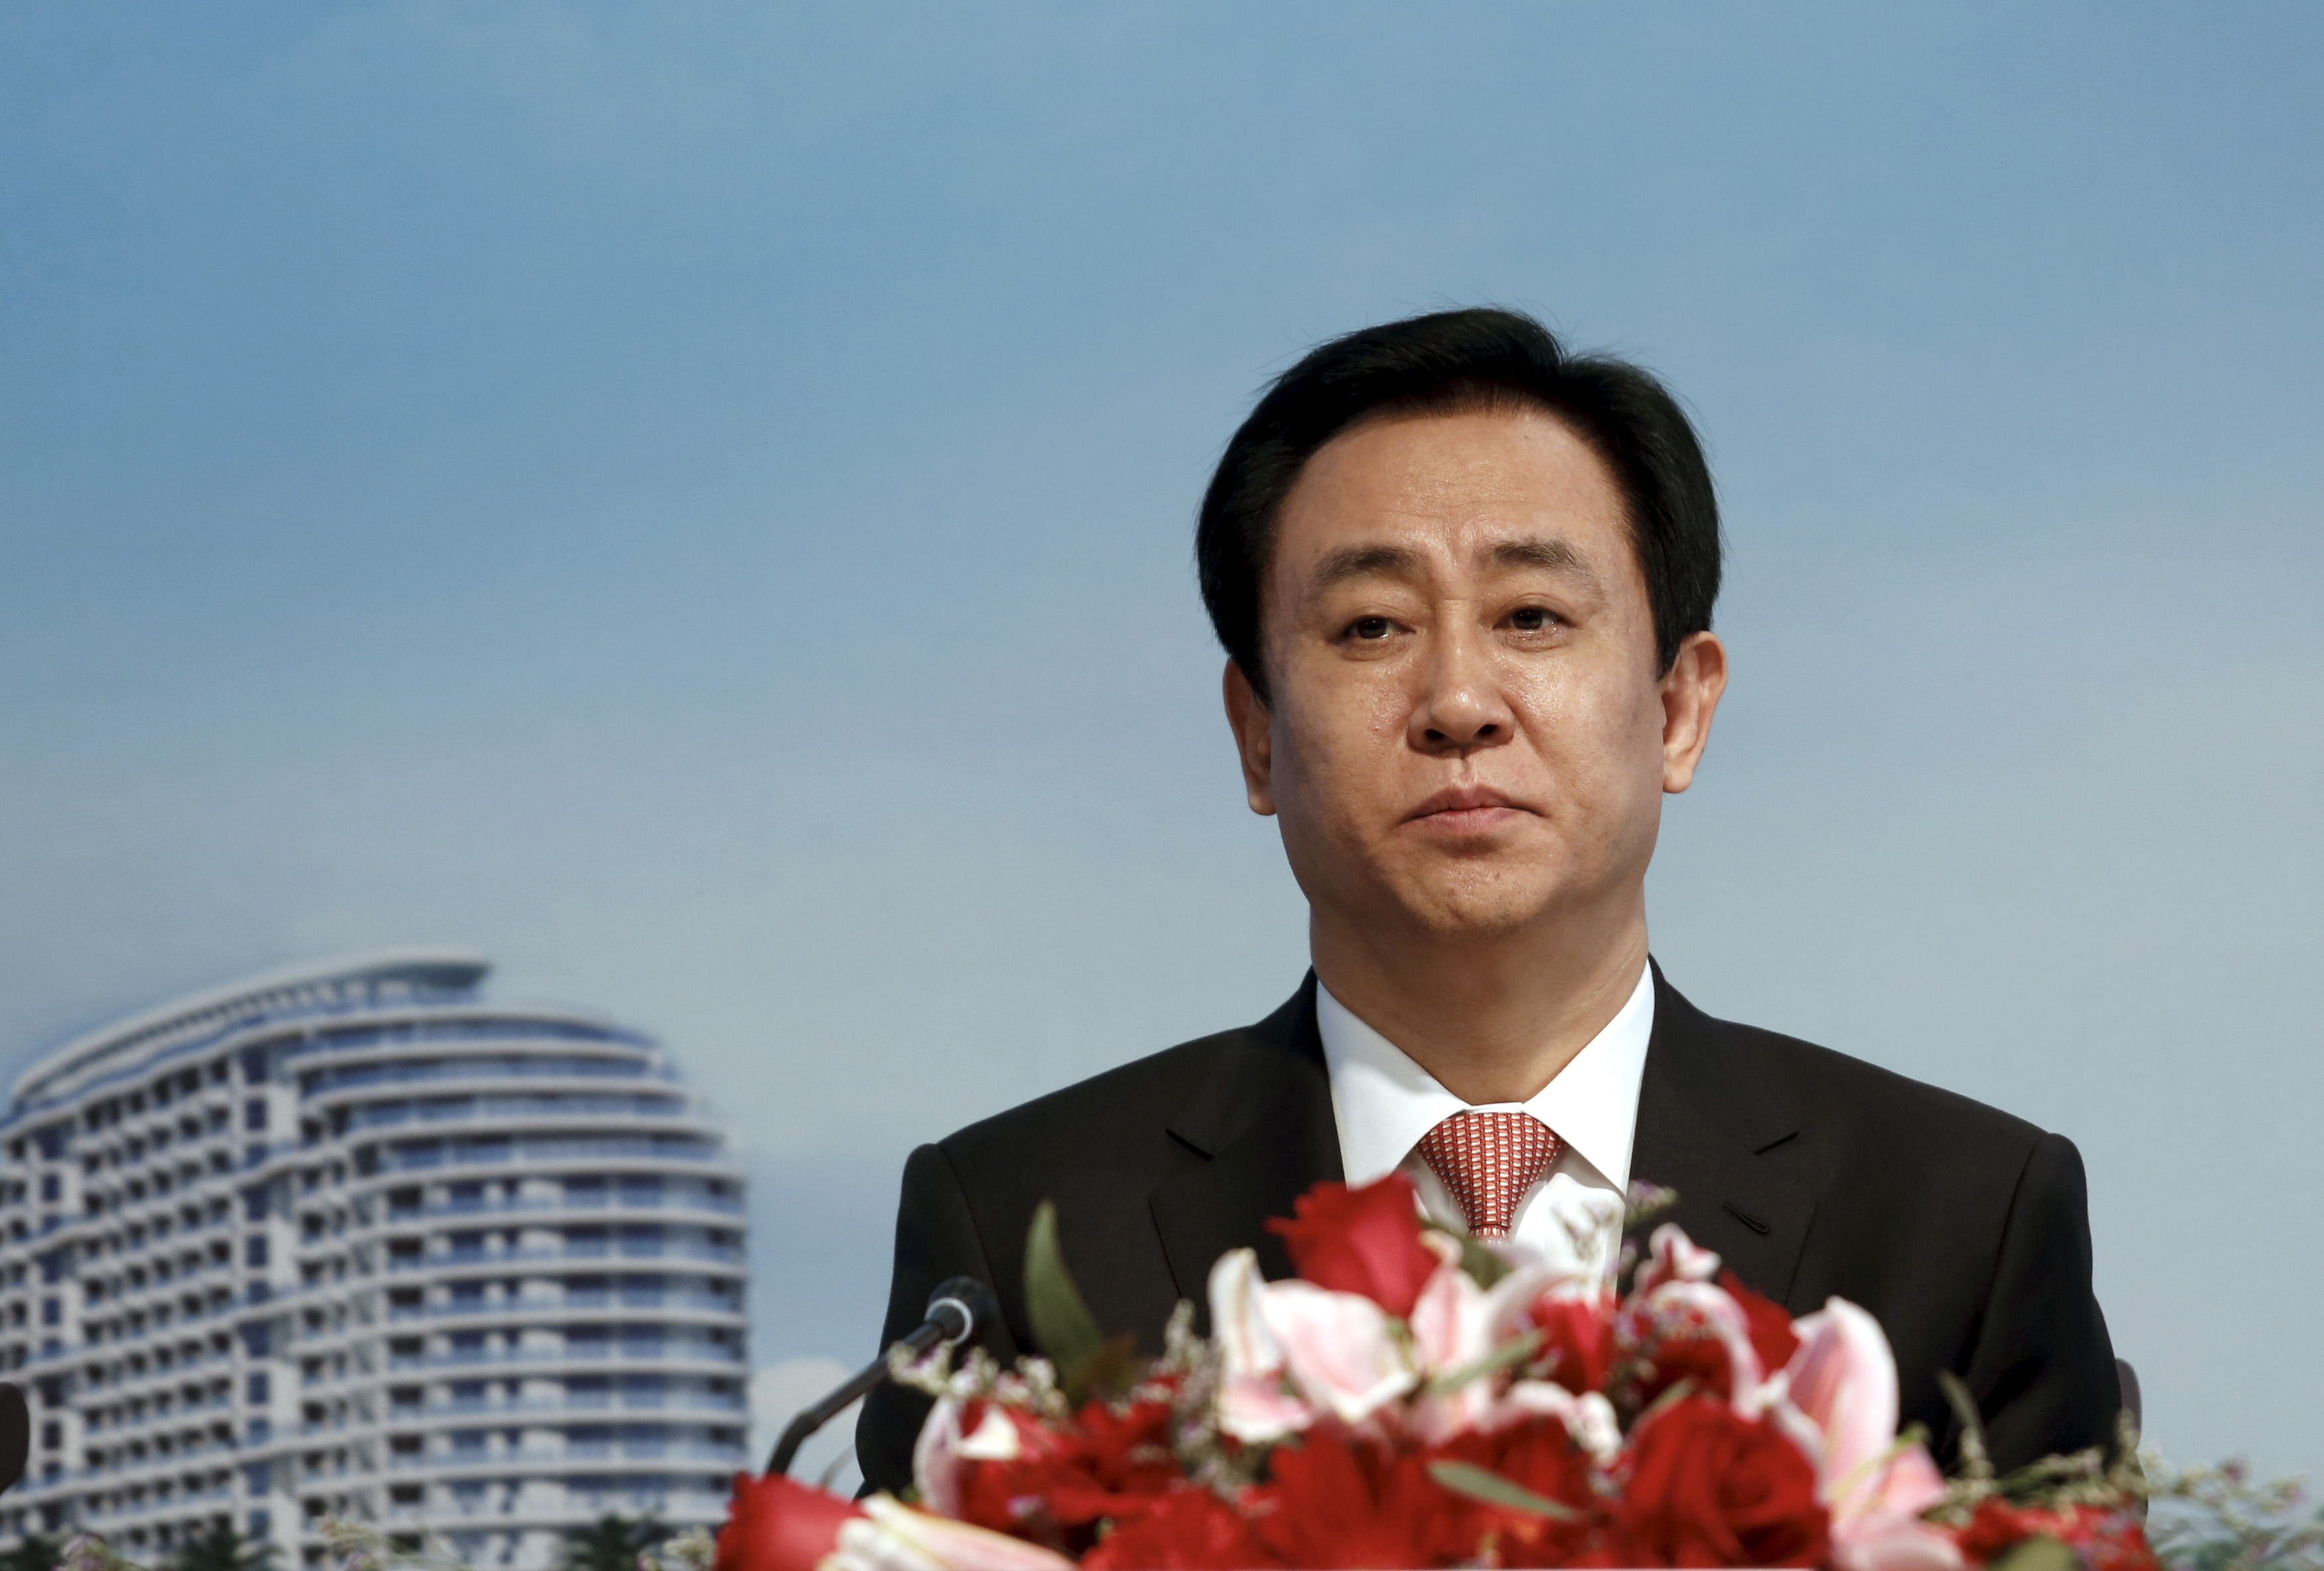 Hui Ka Yan, chairman of Evergrande Real Estate Group Ltd, the country's second-largest property developer by sales, attends a news conference on annual results in Hong Kong, China March 29, 2016.      REUTERS/Bobby Yip - GF10000363809